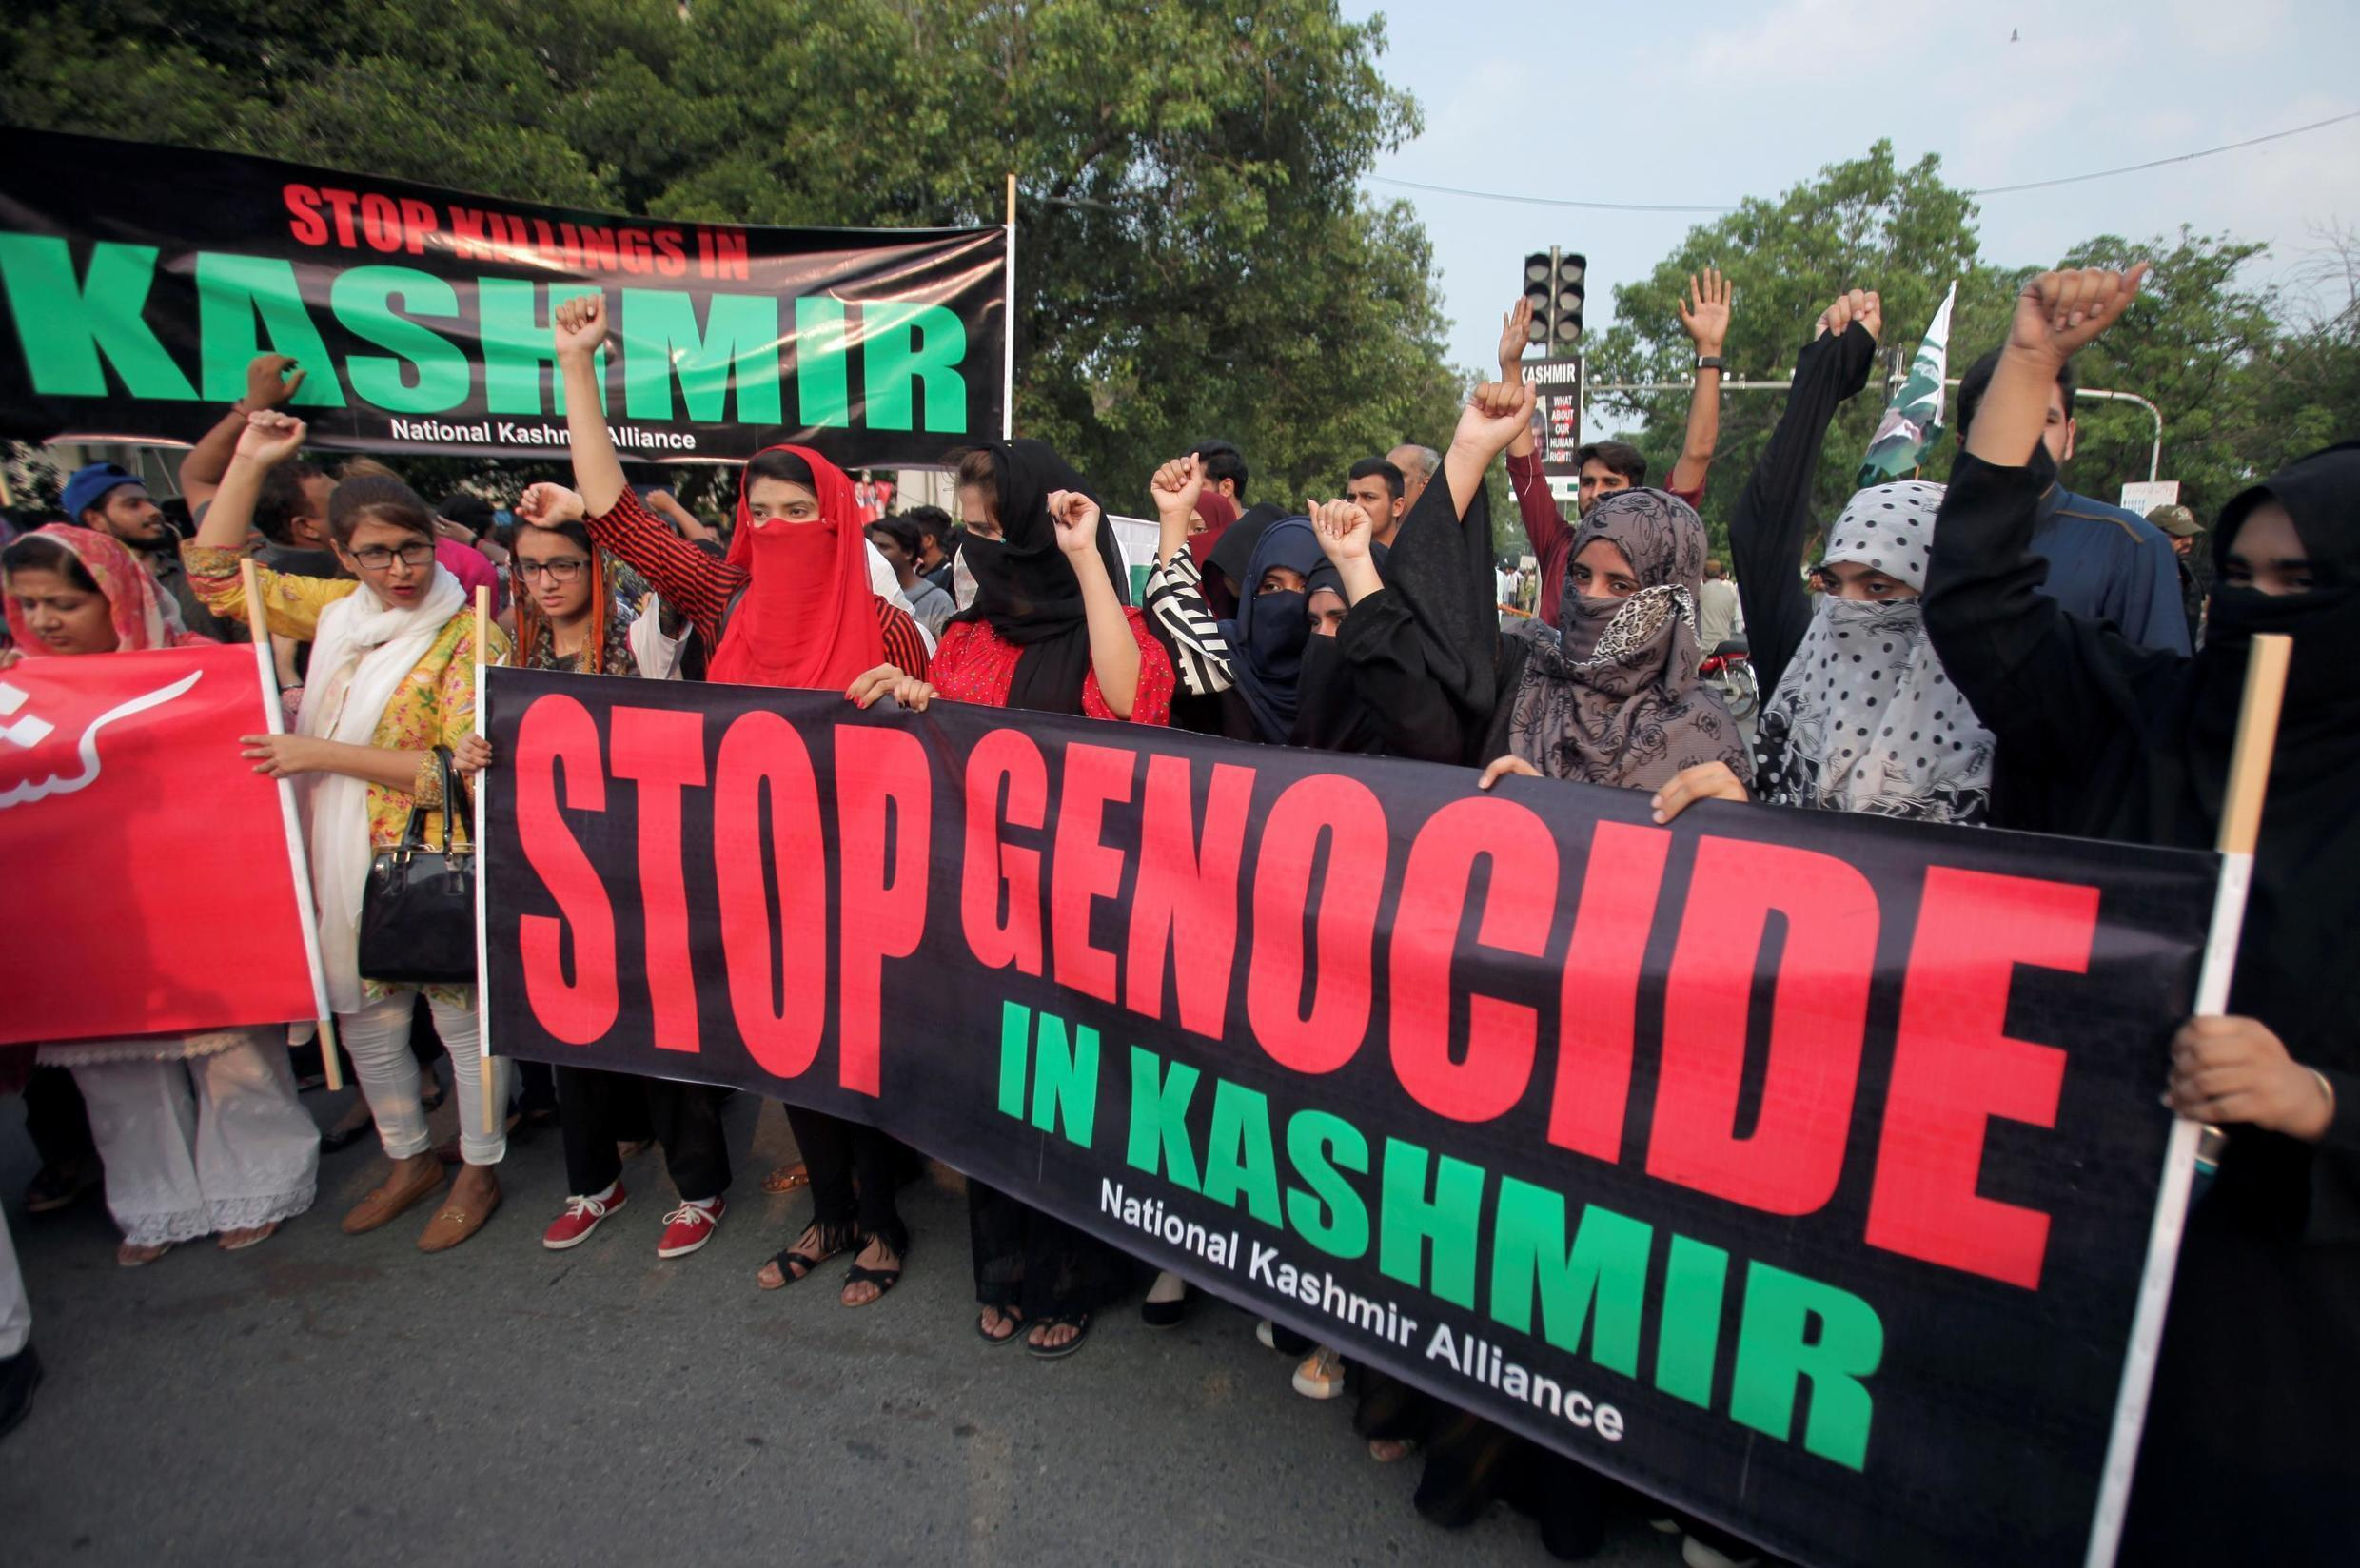 People hold banners and chant slogans during a rally in solidarity with the people of Kashmir, in Pakistan's city of Lahore.